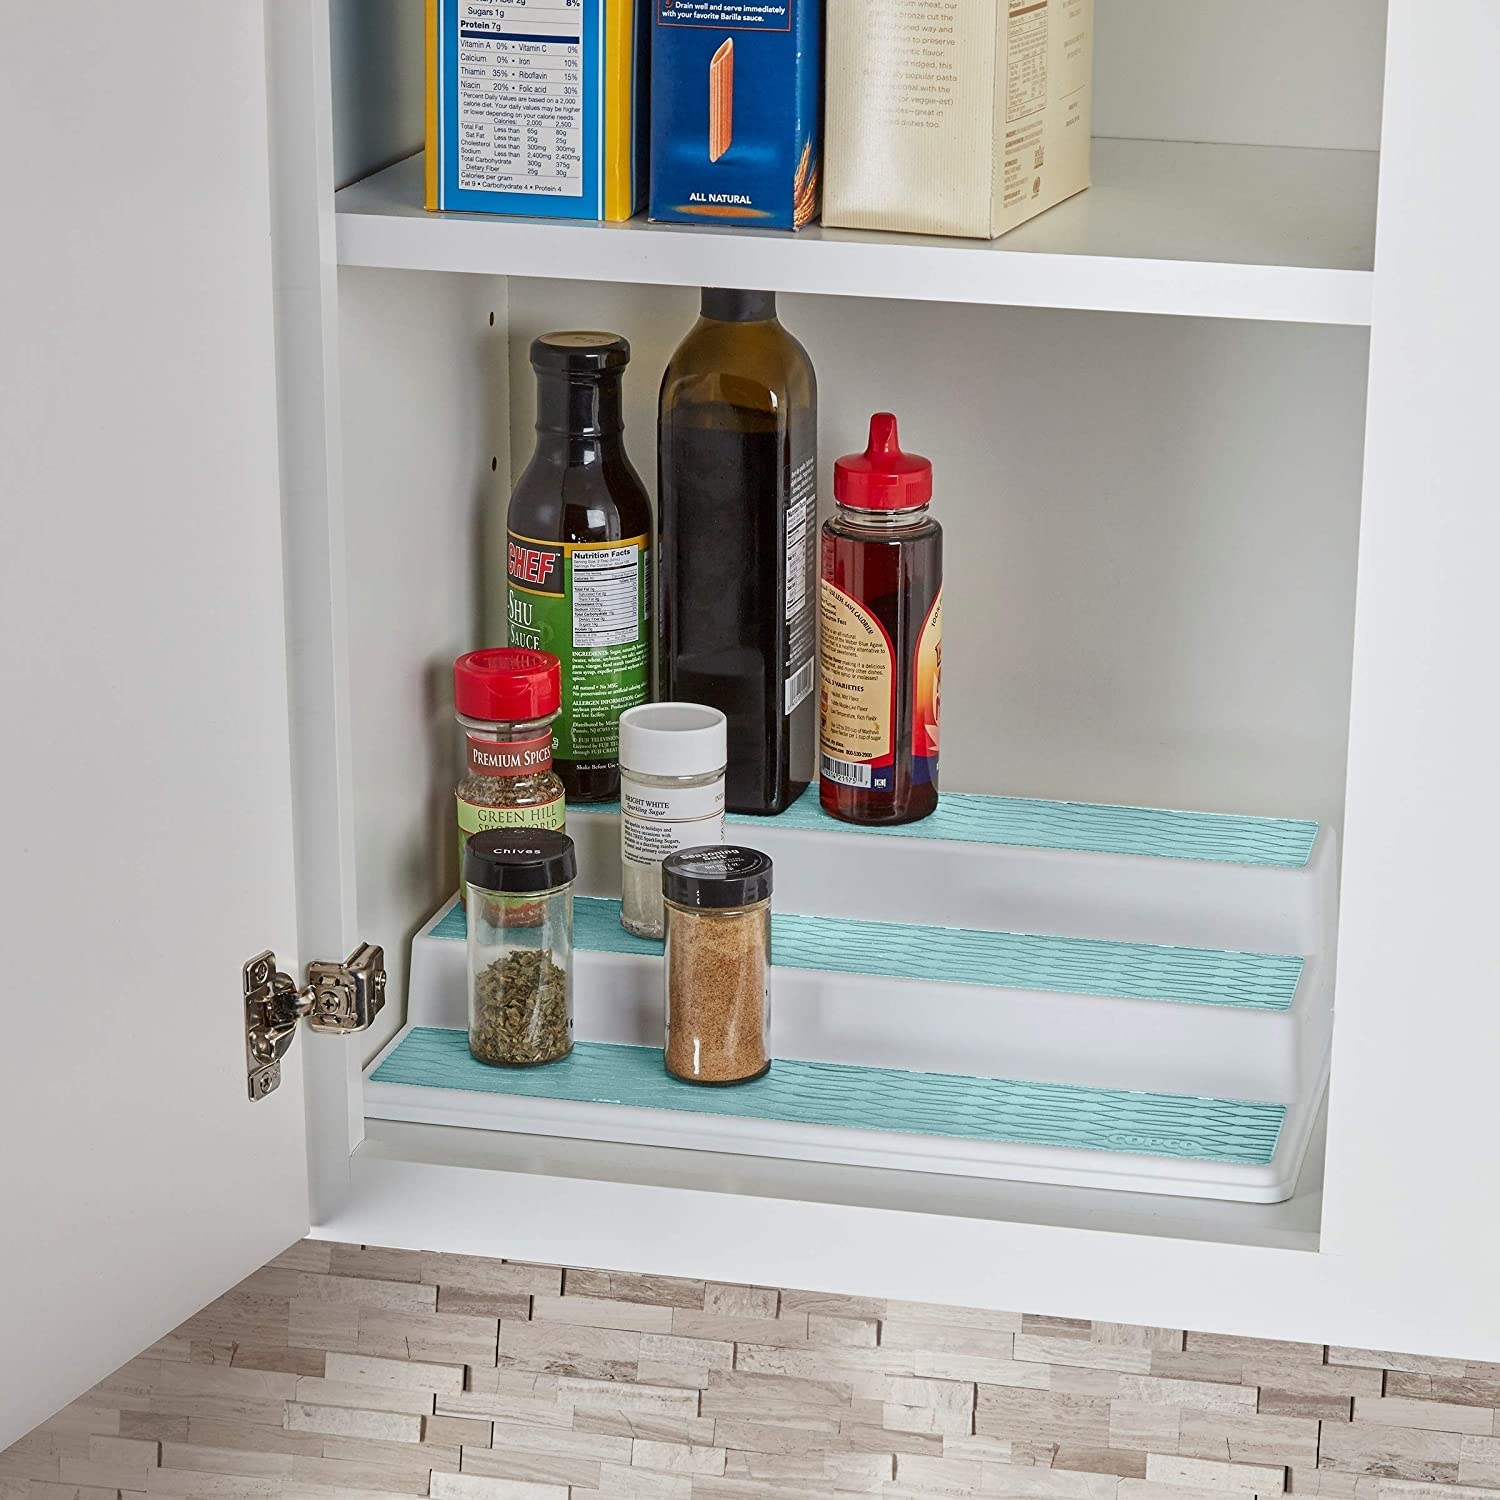 Several jars and bottles on the organizer